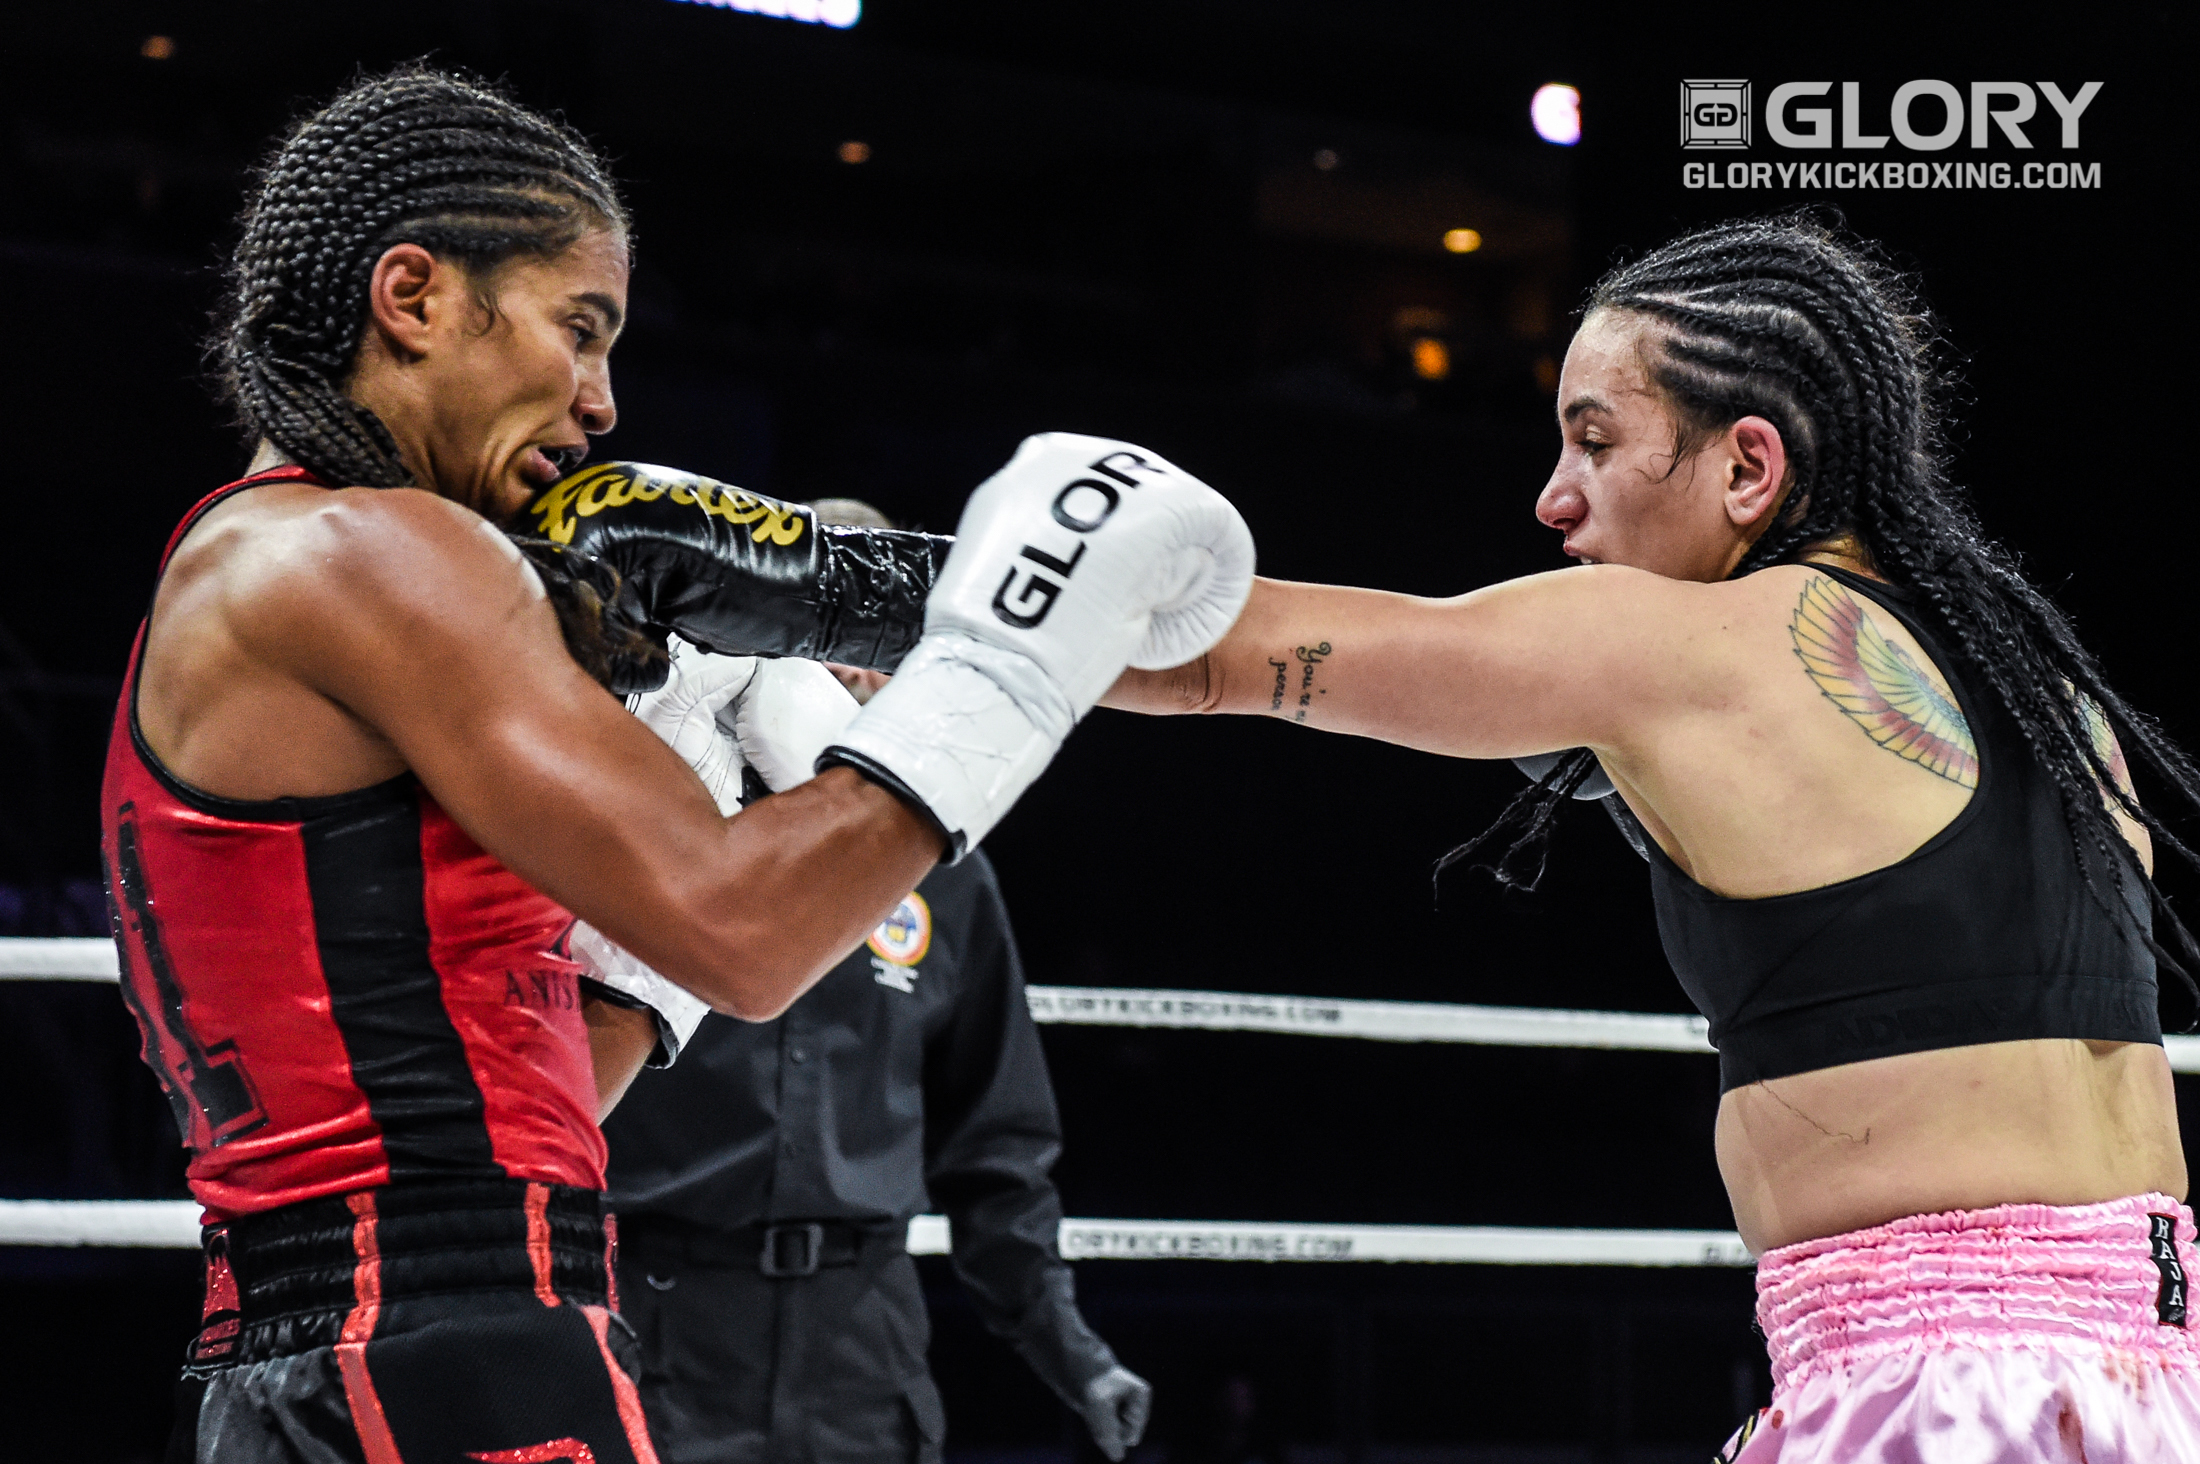 Menezes captures super bantamweight title with controversial decision win over Meksen